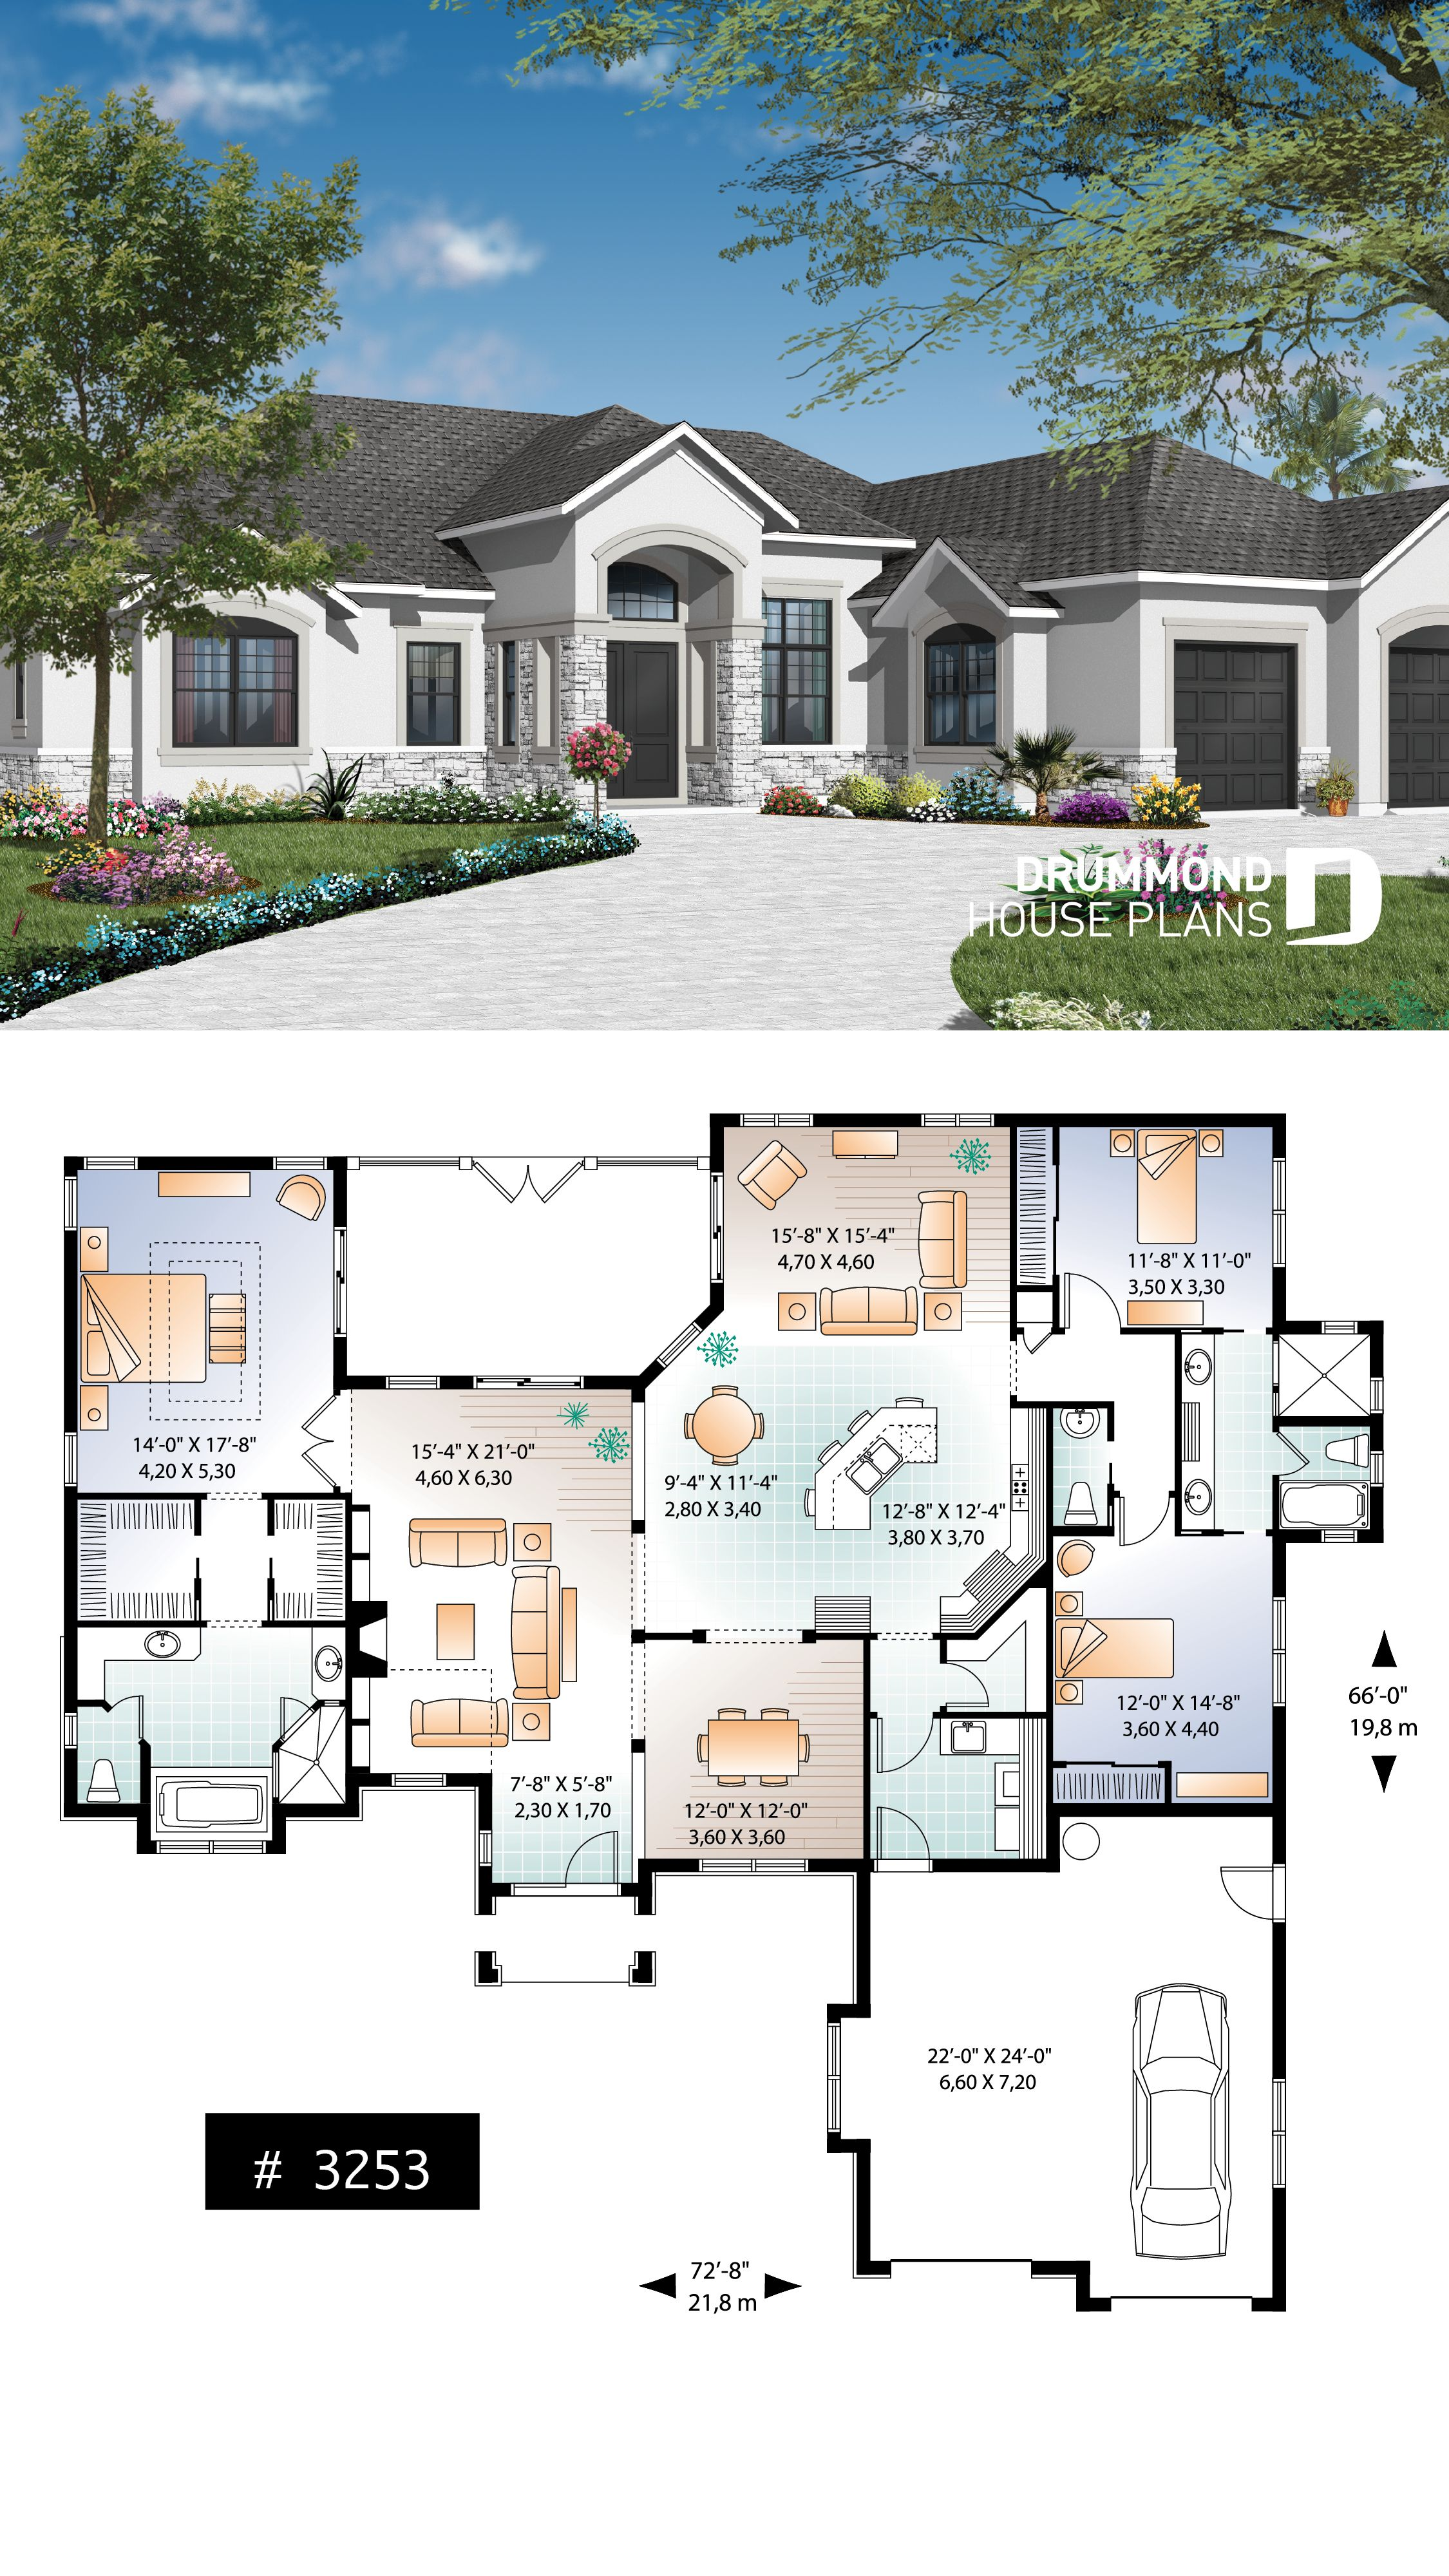 Discover The Plan 3253 Clarendon Which Will Please You For Its 3 Bedrooms And For Its Mediterranean Styles Florida House Plans New House Plans Family House Plans